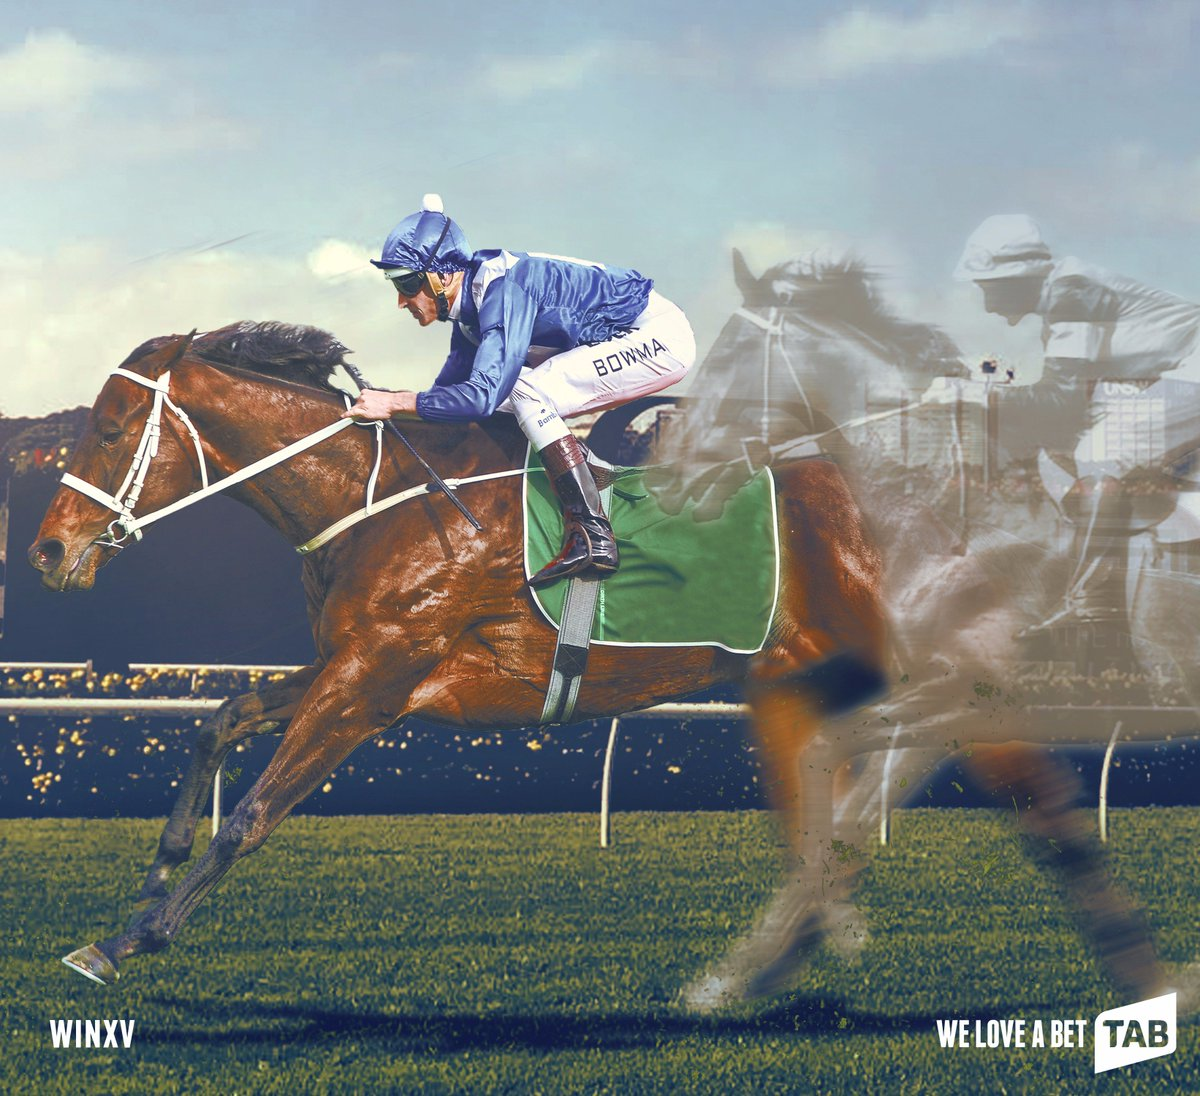 Winx wins the TAB Chipping Norton Stakes!  Surpassing the legendary Ph...